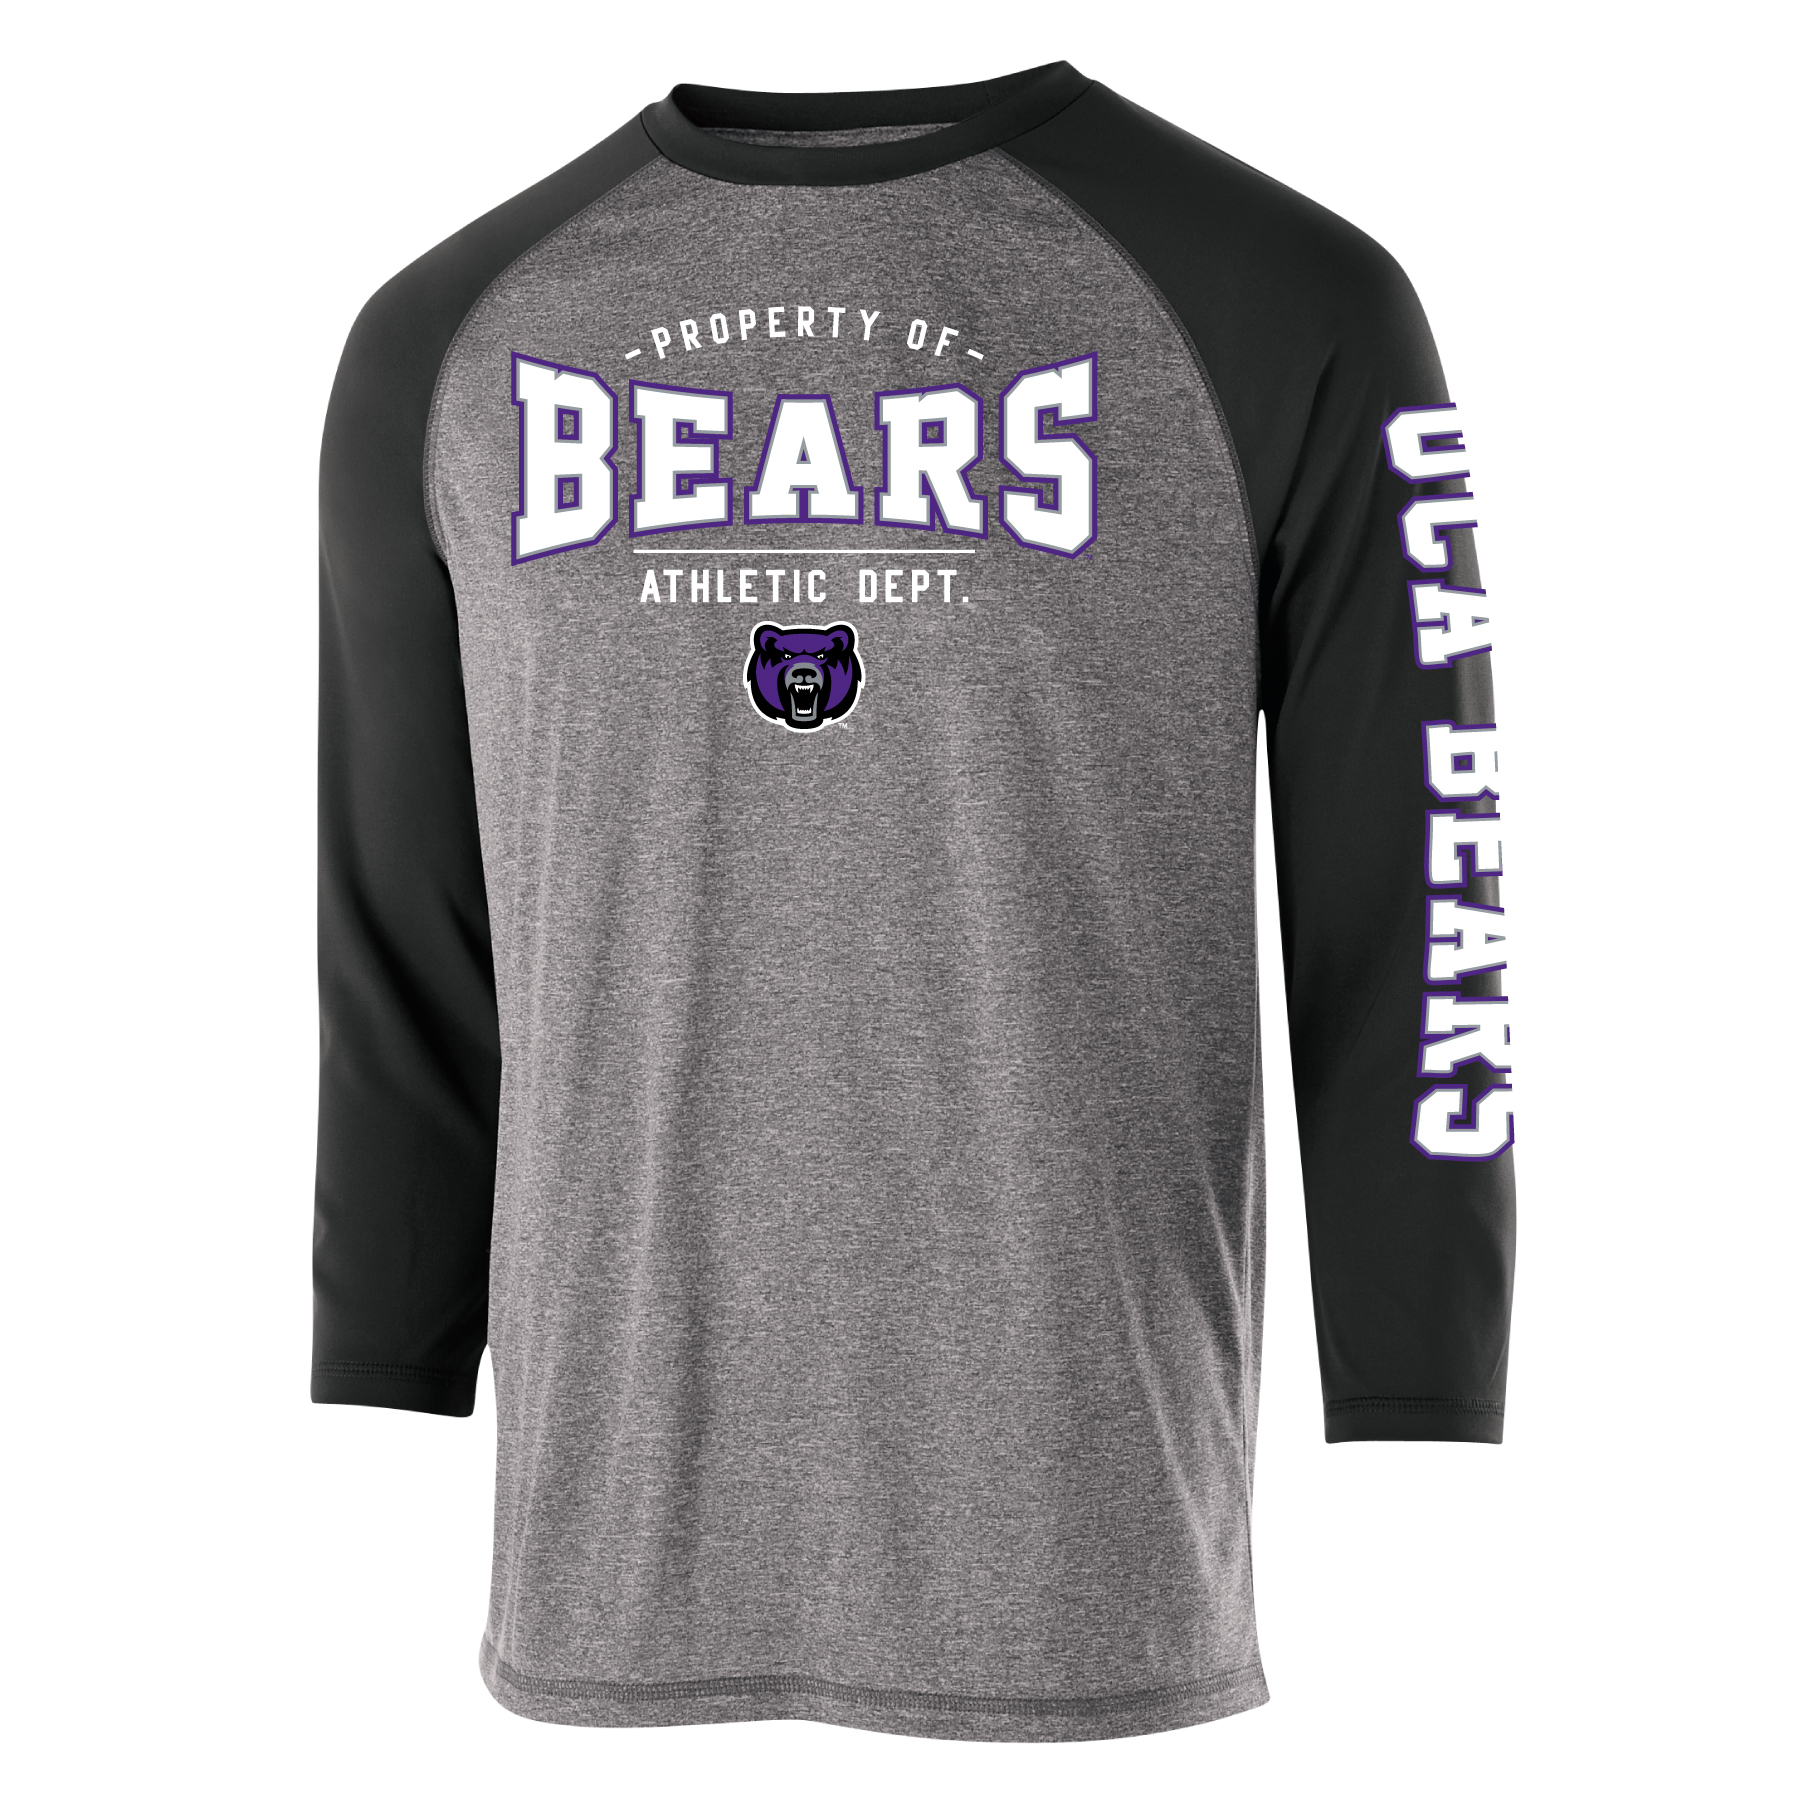 Bears Typhoon Shirt